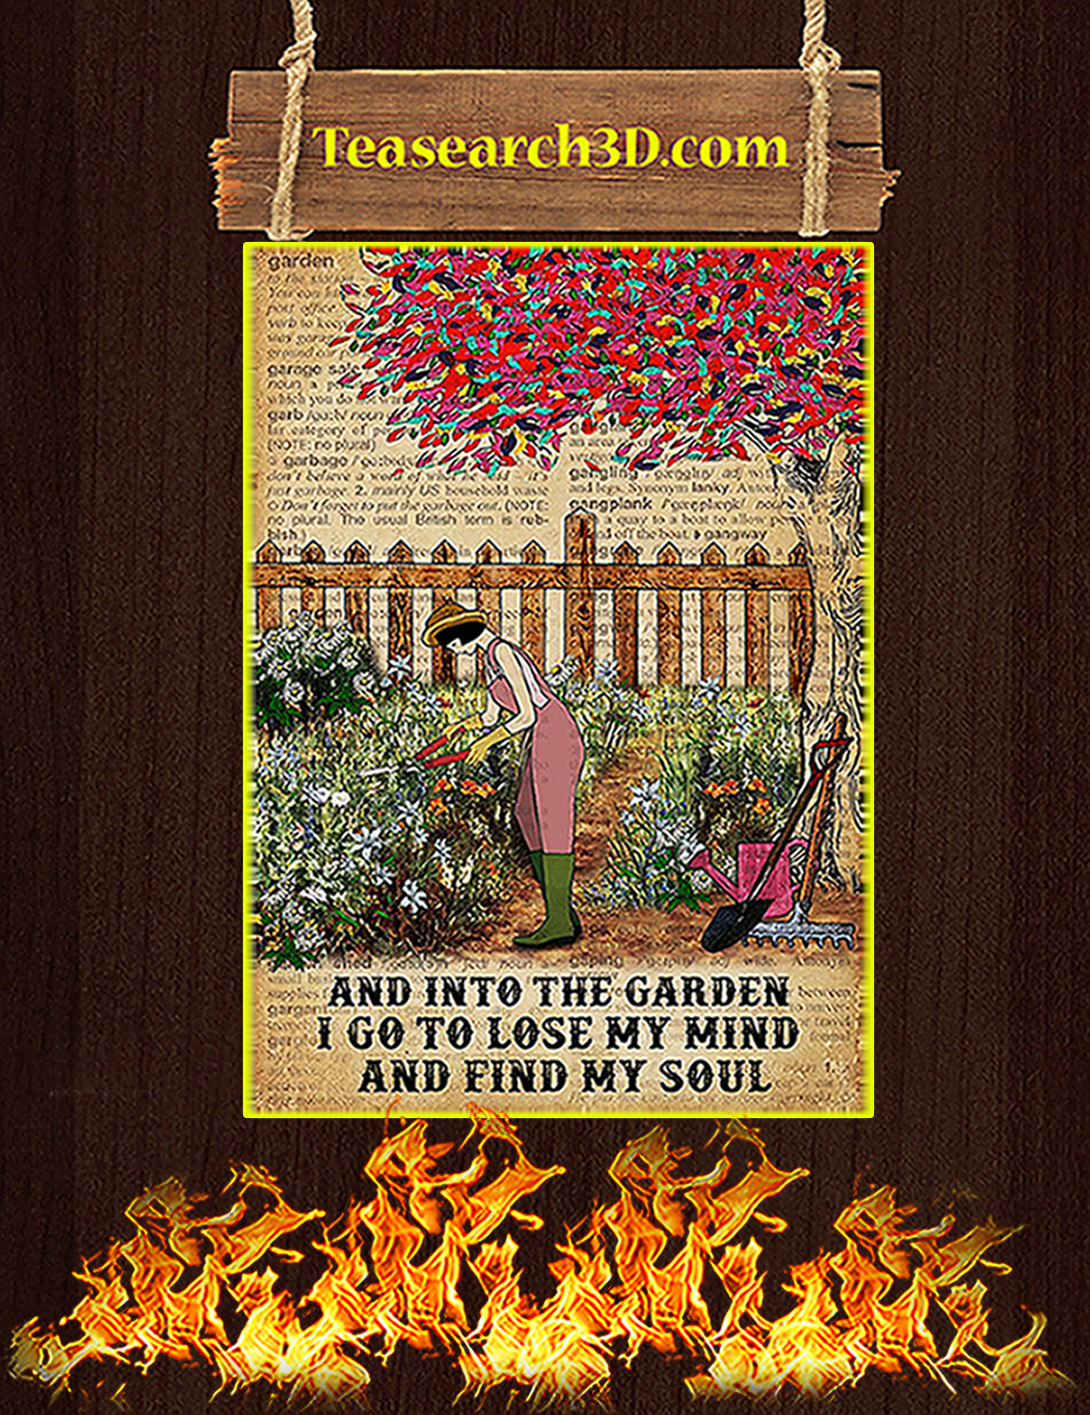 Dictionary And into the garden I go to lose my mind and find my soul poster A2